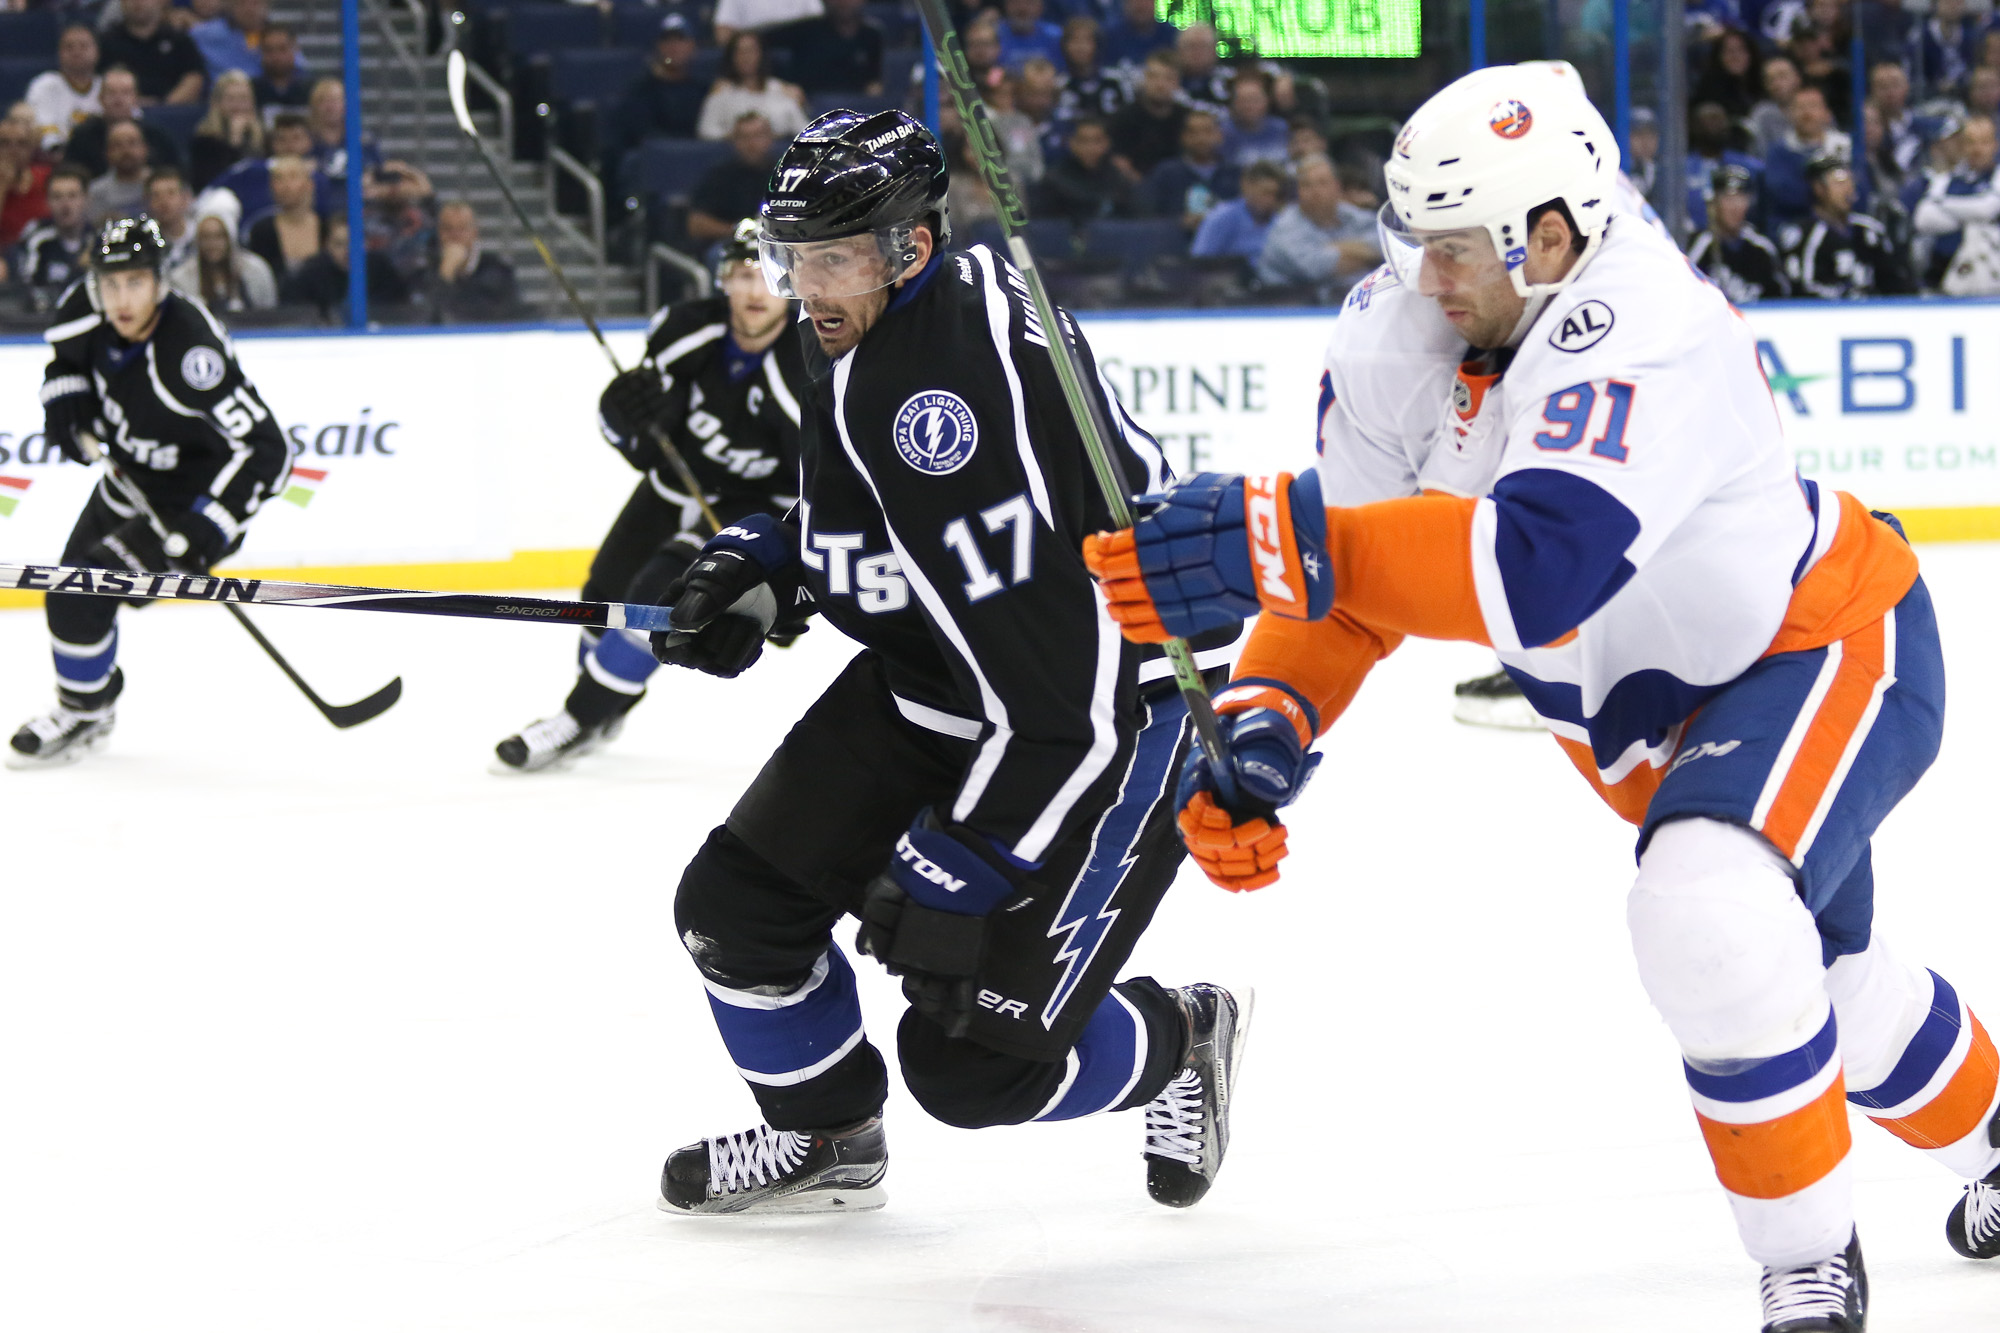 Killorn races for the puck against Tavares./ANDREW J. KRAMER